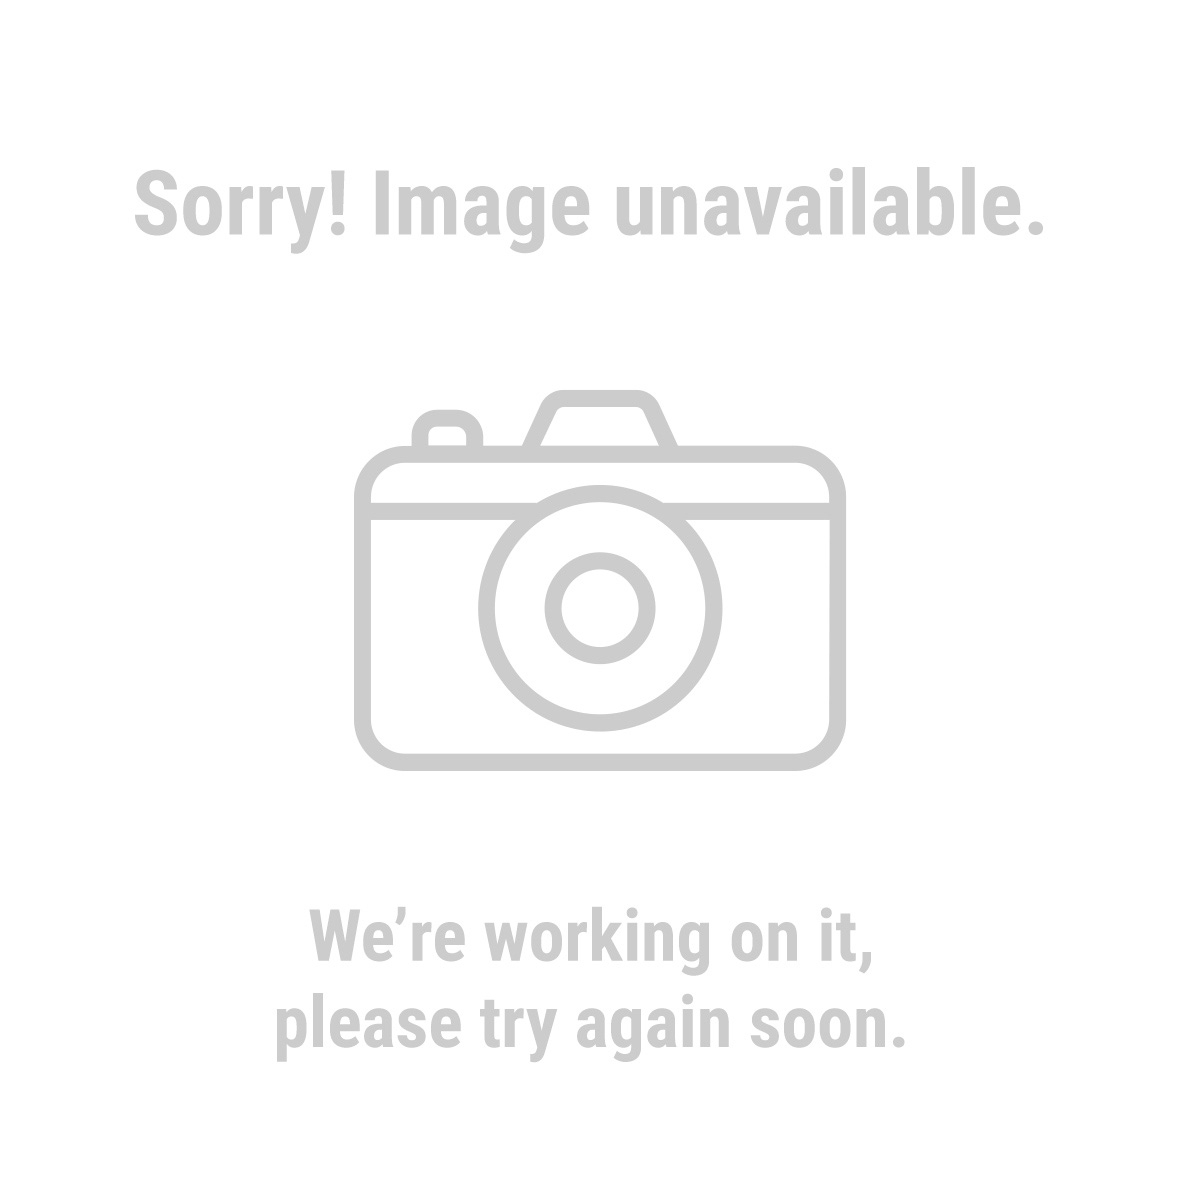 61844 6 in. Rubber Heavy Duty Swivel Caster